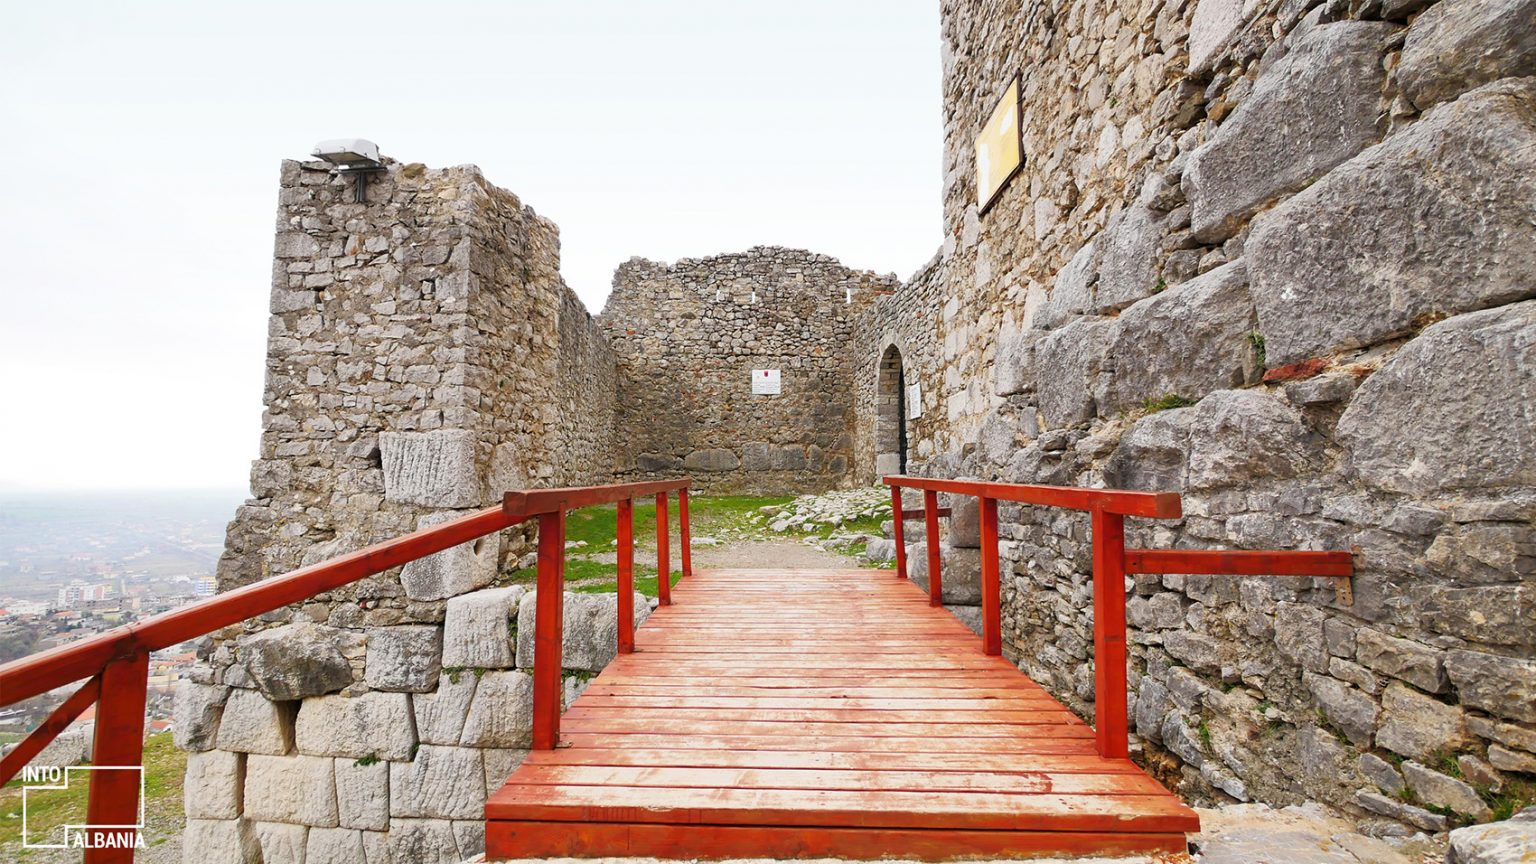 Castle of Lezha, photo by IntoAlbania